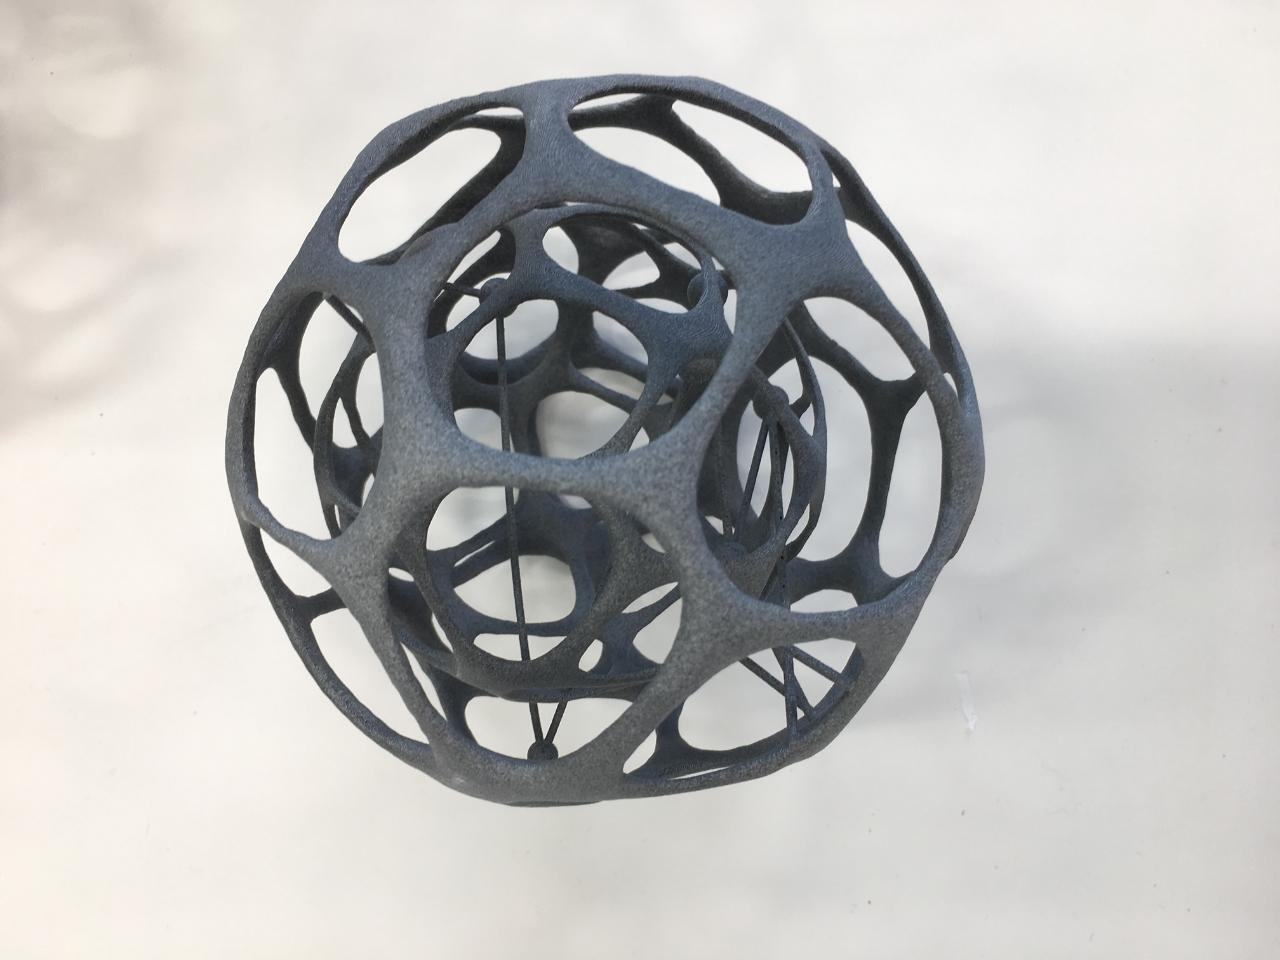 Sample of 3D printed cell model.